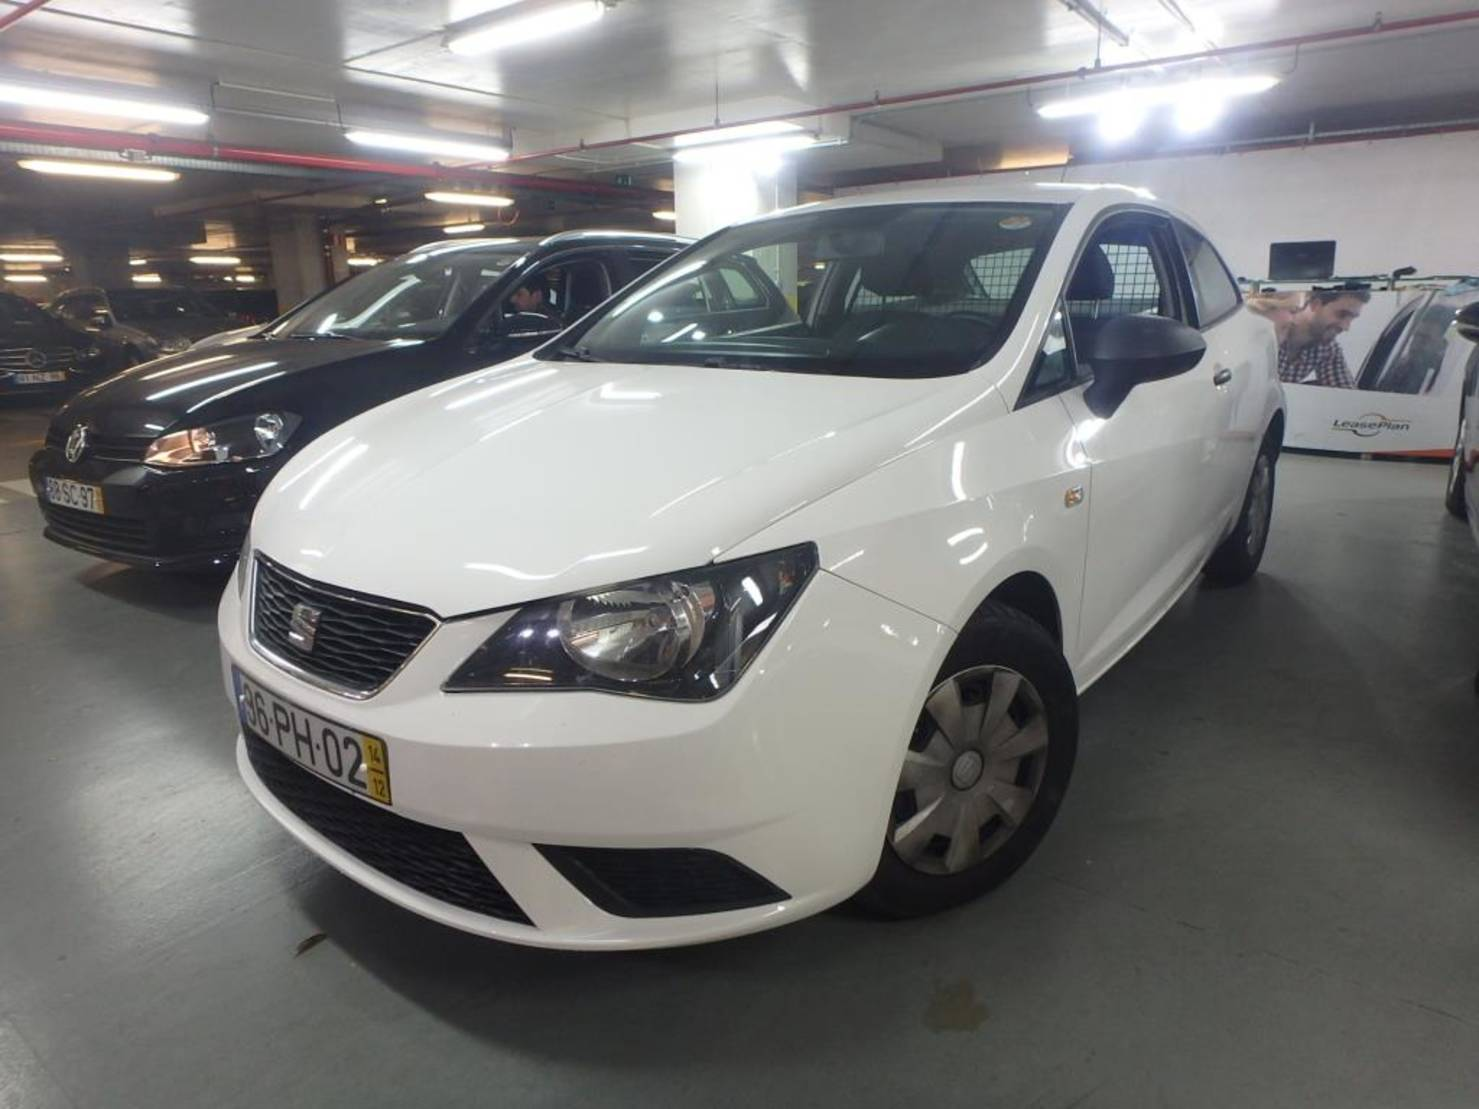 Seat Ibiza Ibiza SC 1.2 TDi Business, 1.2 TDi Business detail1